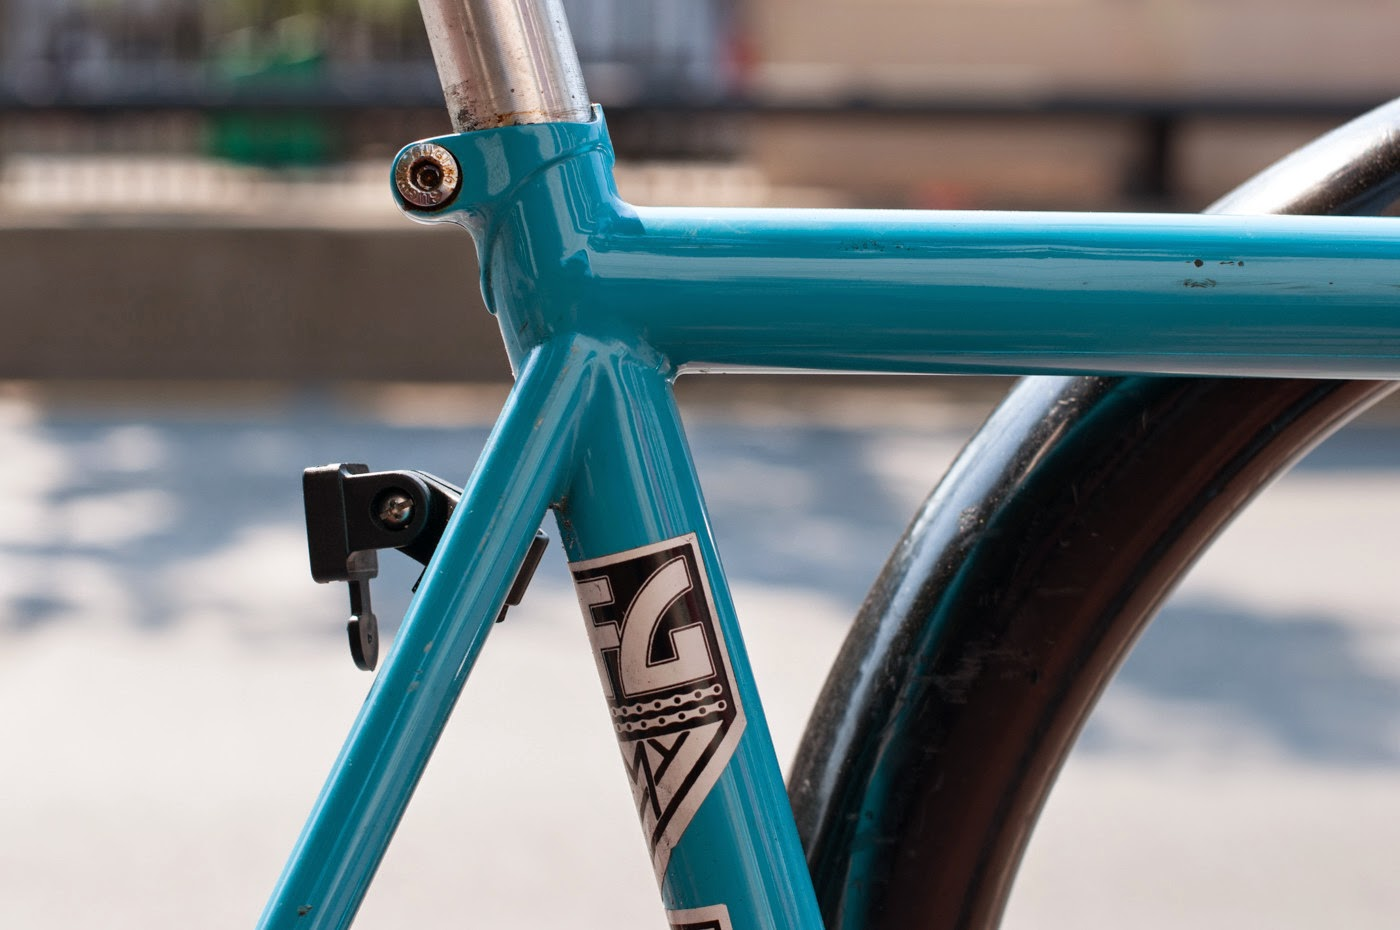 Fixie, fixed speed, bicycle, boston, USA, custom, customised, blue, tim Macauley, the biketorialist, shimano, frame, 3t, ritchey, tiagra , seat tube,